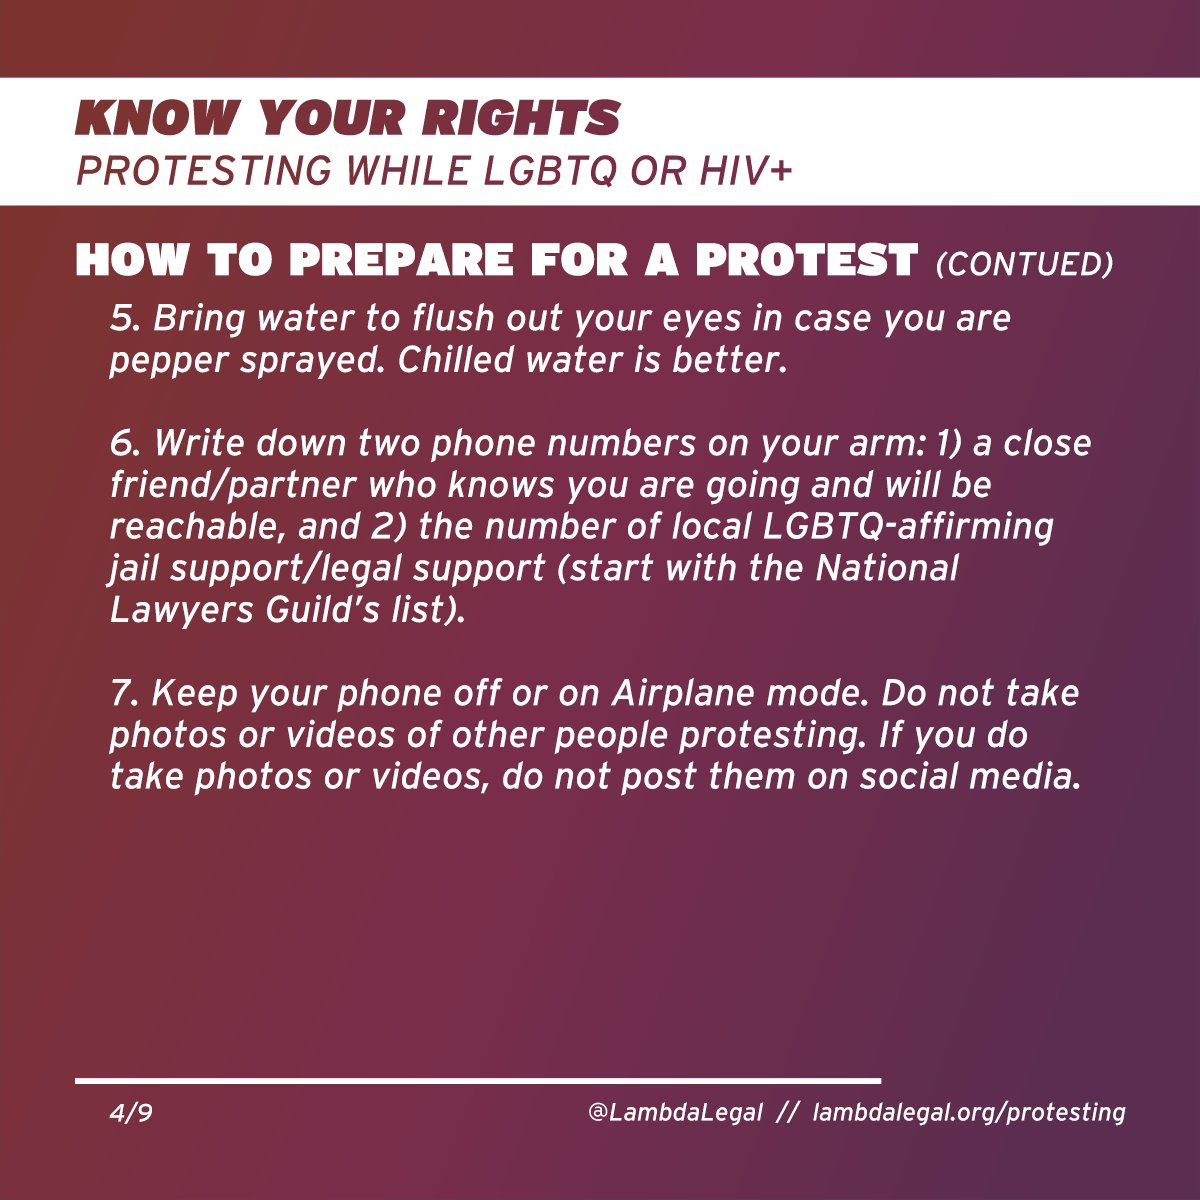 Bring WATER (chilled is better) to flush eyes in case of gas/pepper spray.  Write 2 phone numbers on your body: personal contact & number of local legal support (@NLGnews list: https://www.nlg.org/chapters/ )  Keep phone OFF or on Airplane mode. Don't post pics/vids on social.pic.twitter.com/n7S0HhaHa5